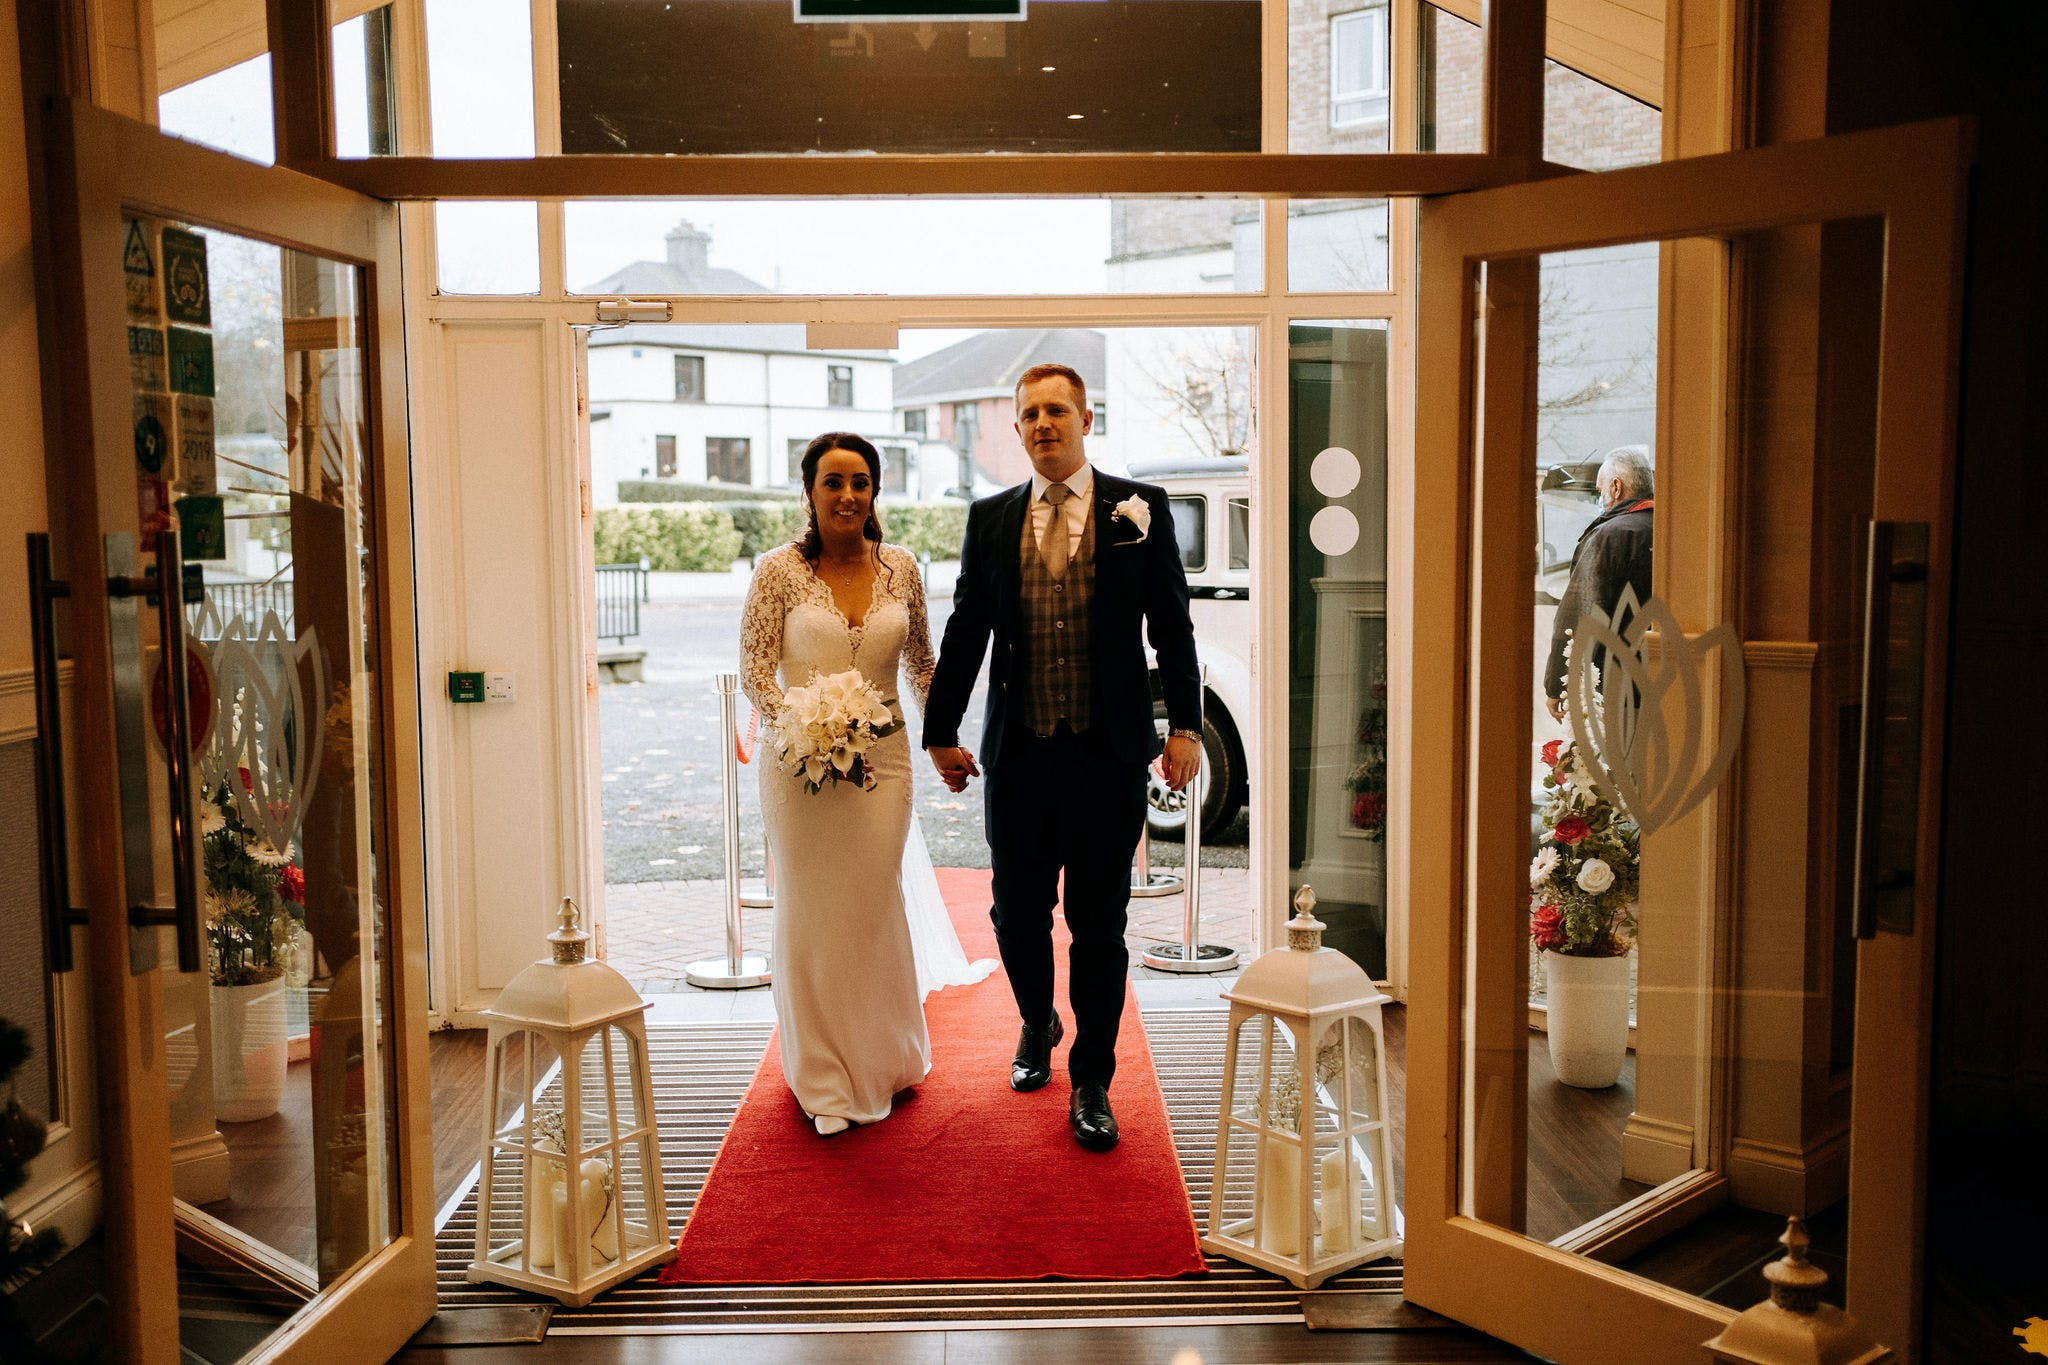 The bride and groom making their grand entrance at Riverside Hotel.